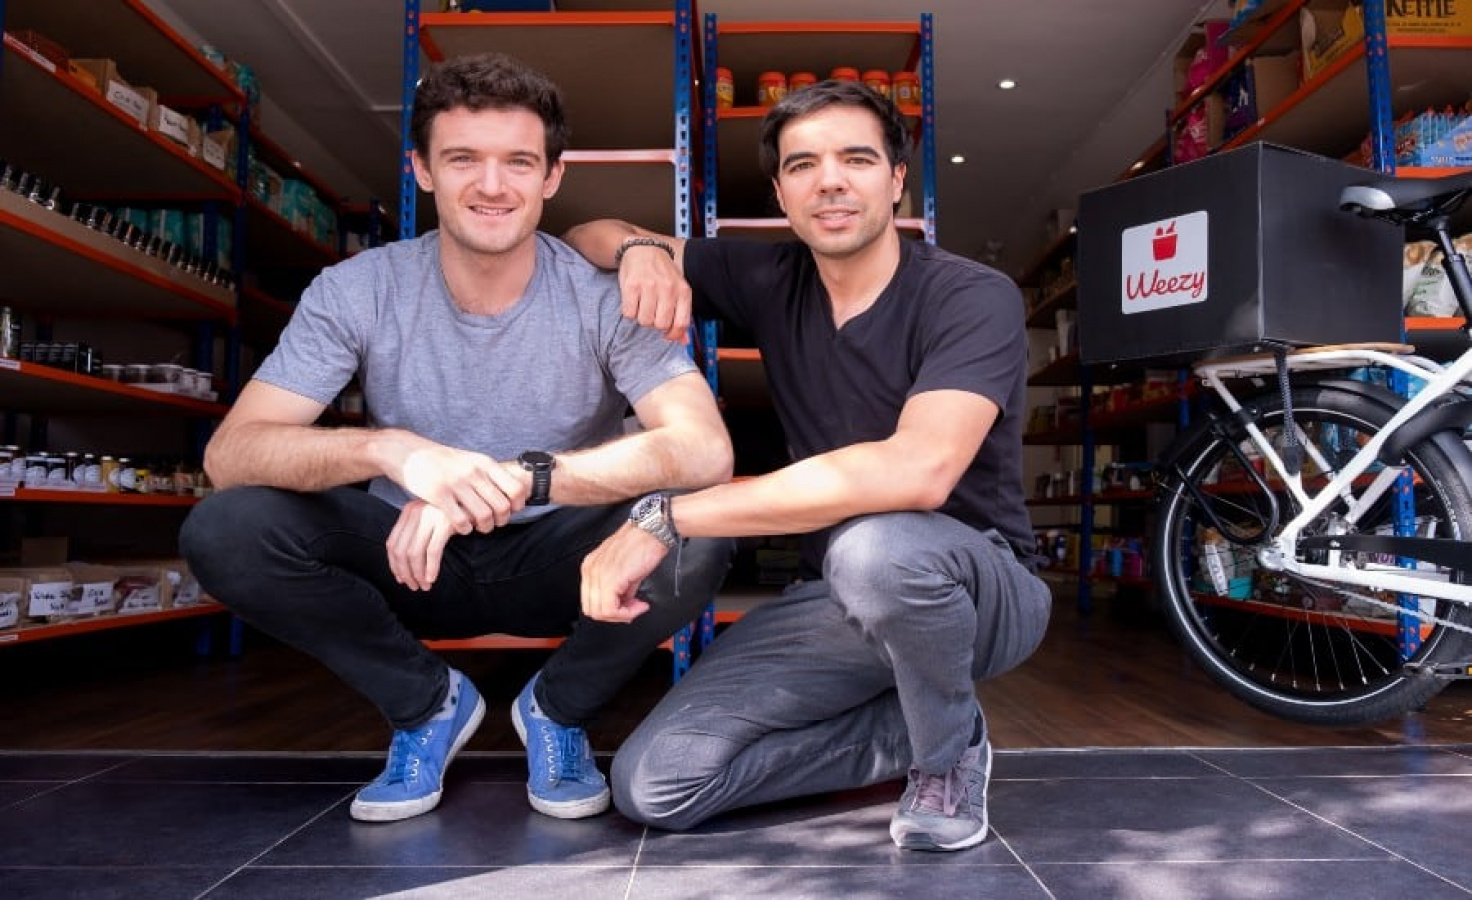 Online grocery, UK, Blossom Capital, Creandum, and Index Ventures, secured $20M , expanded its operations also in Amsterdam , raised over $550 million , 15 cities by the end of 2021